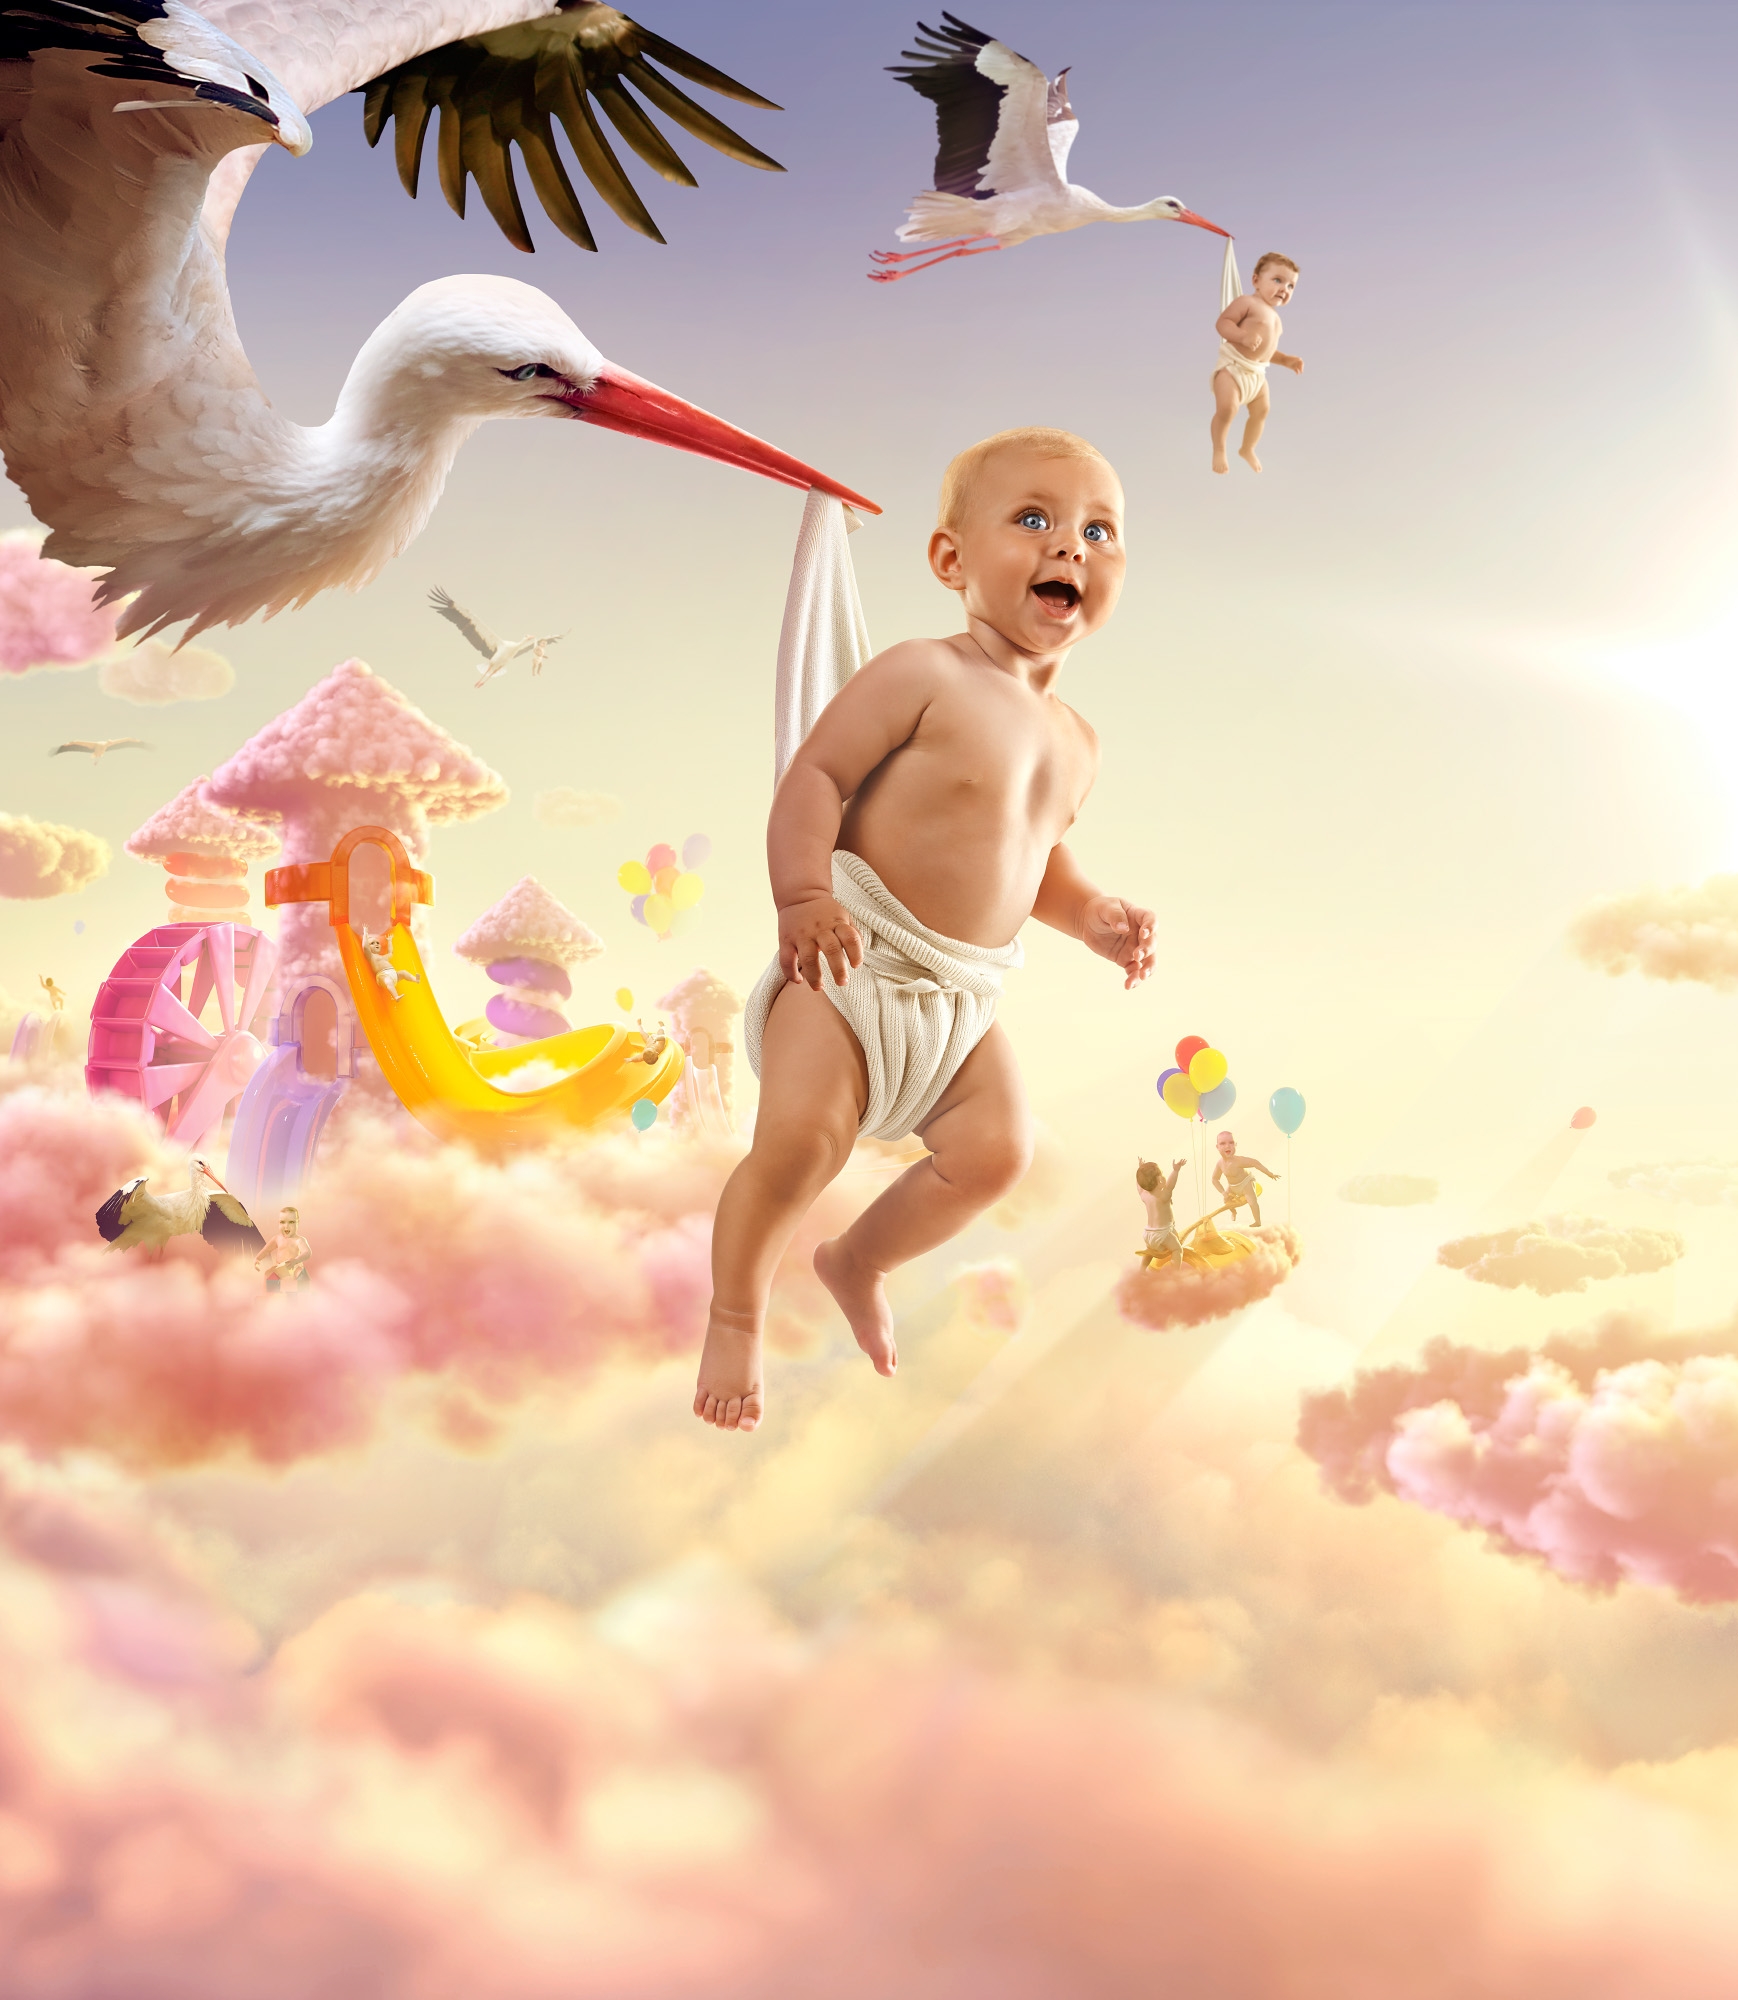 babys ch digital advertising - HD 1738×2000